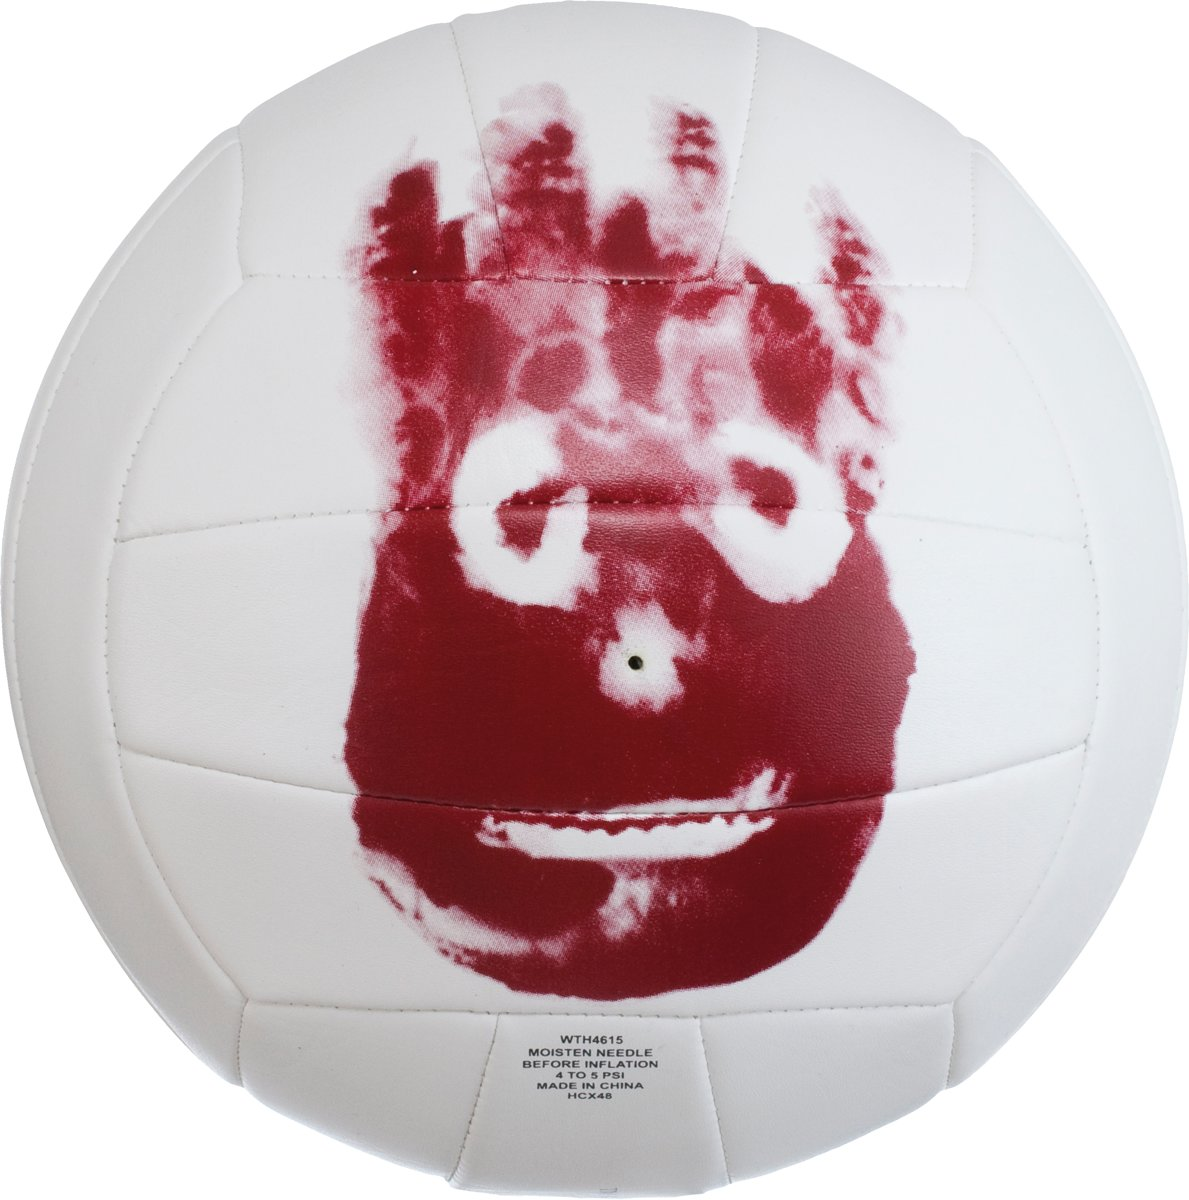 Wilson mr Wilson castaway volleybal - Volleybal - Wit Combi